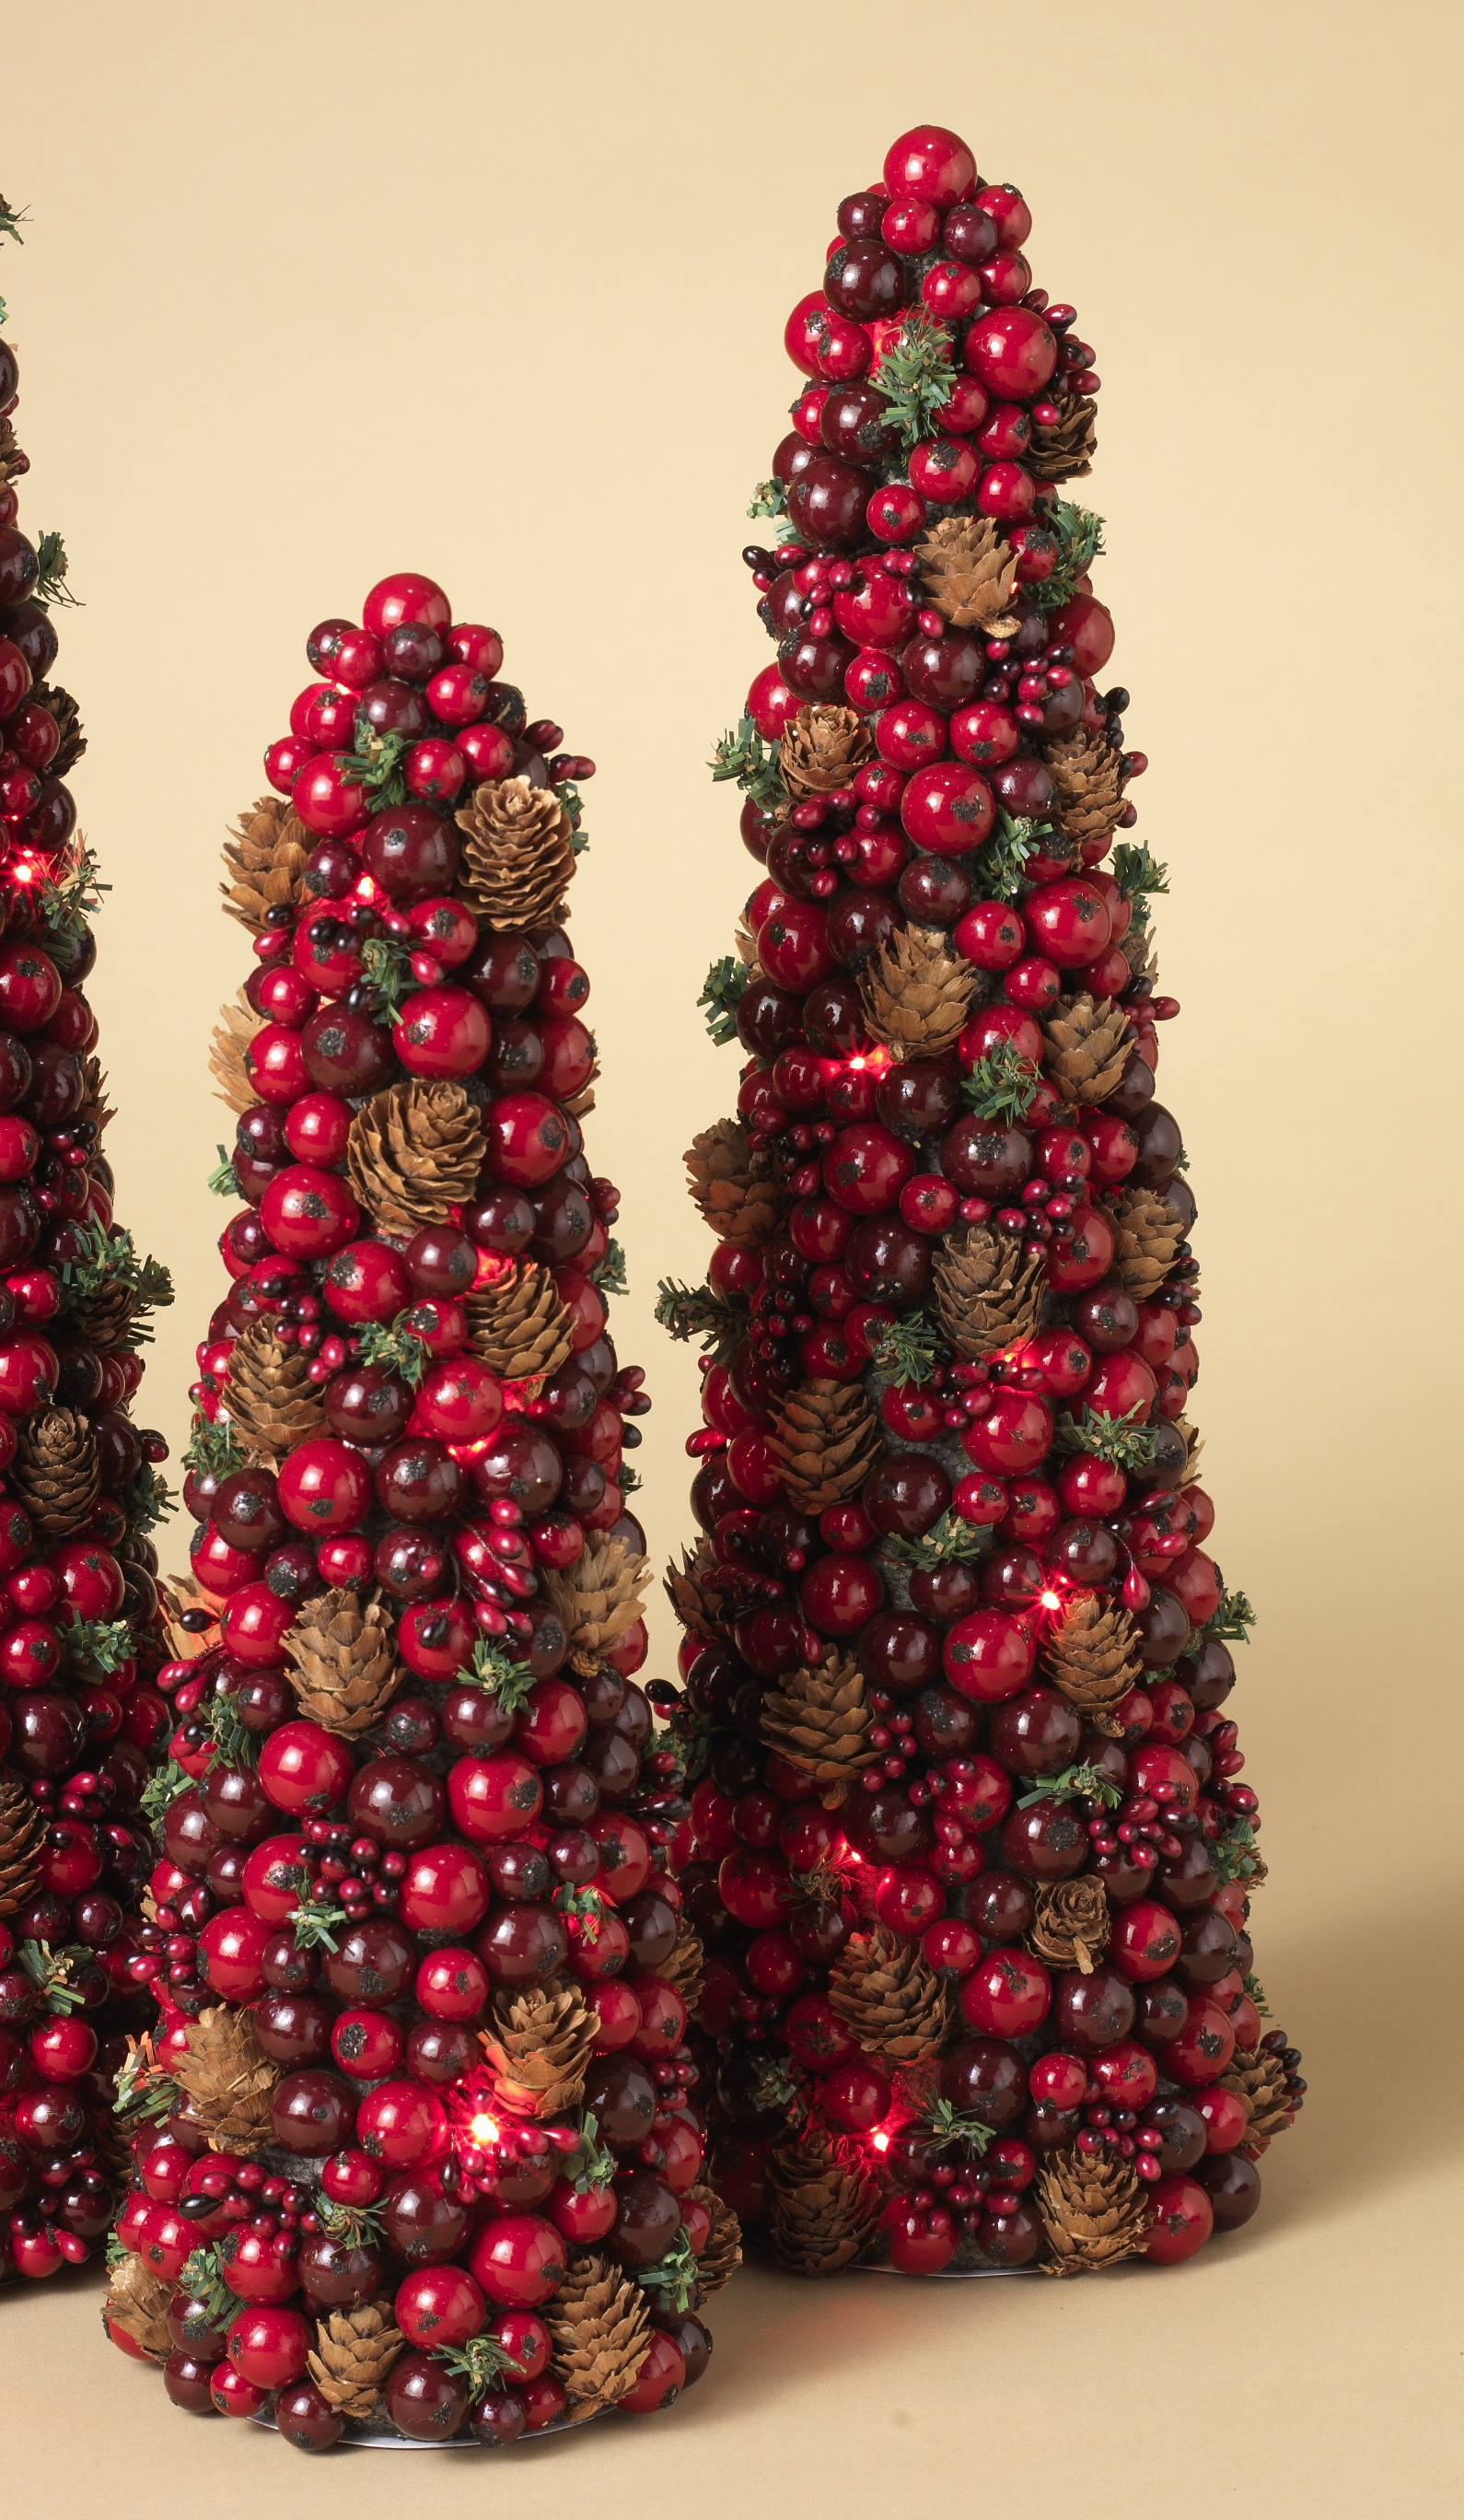 Christmas Tree Decoration Berries : Collectibles nativity sets gifts quot large berry cone